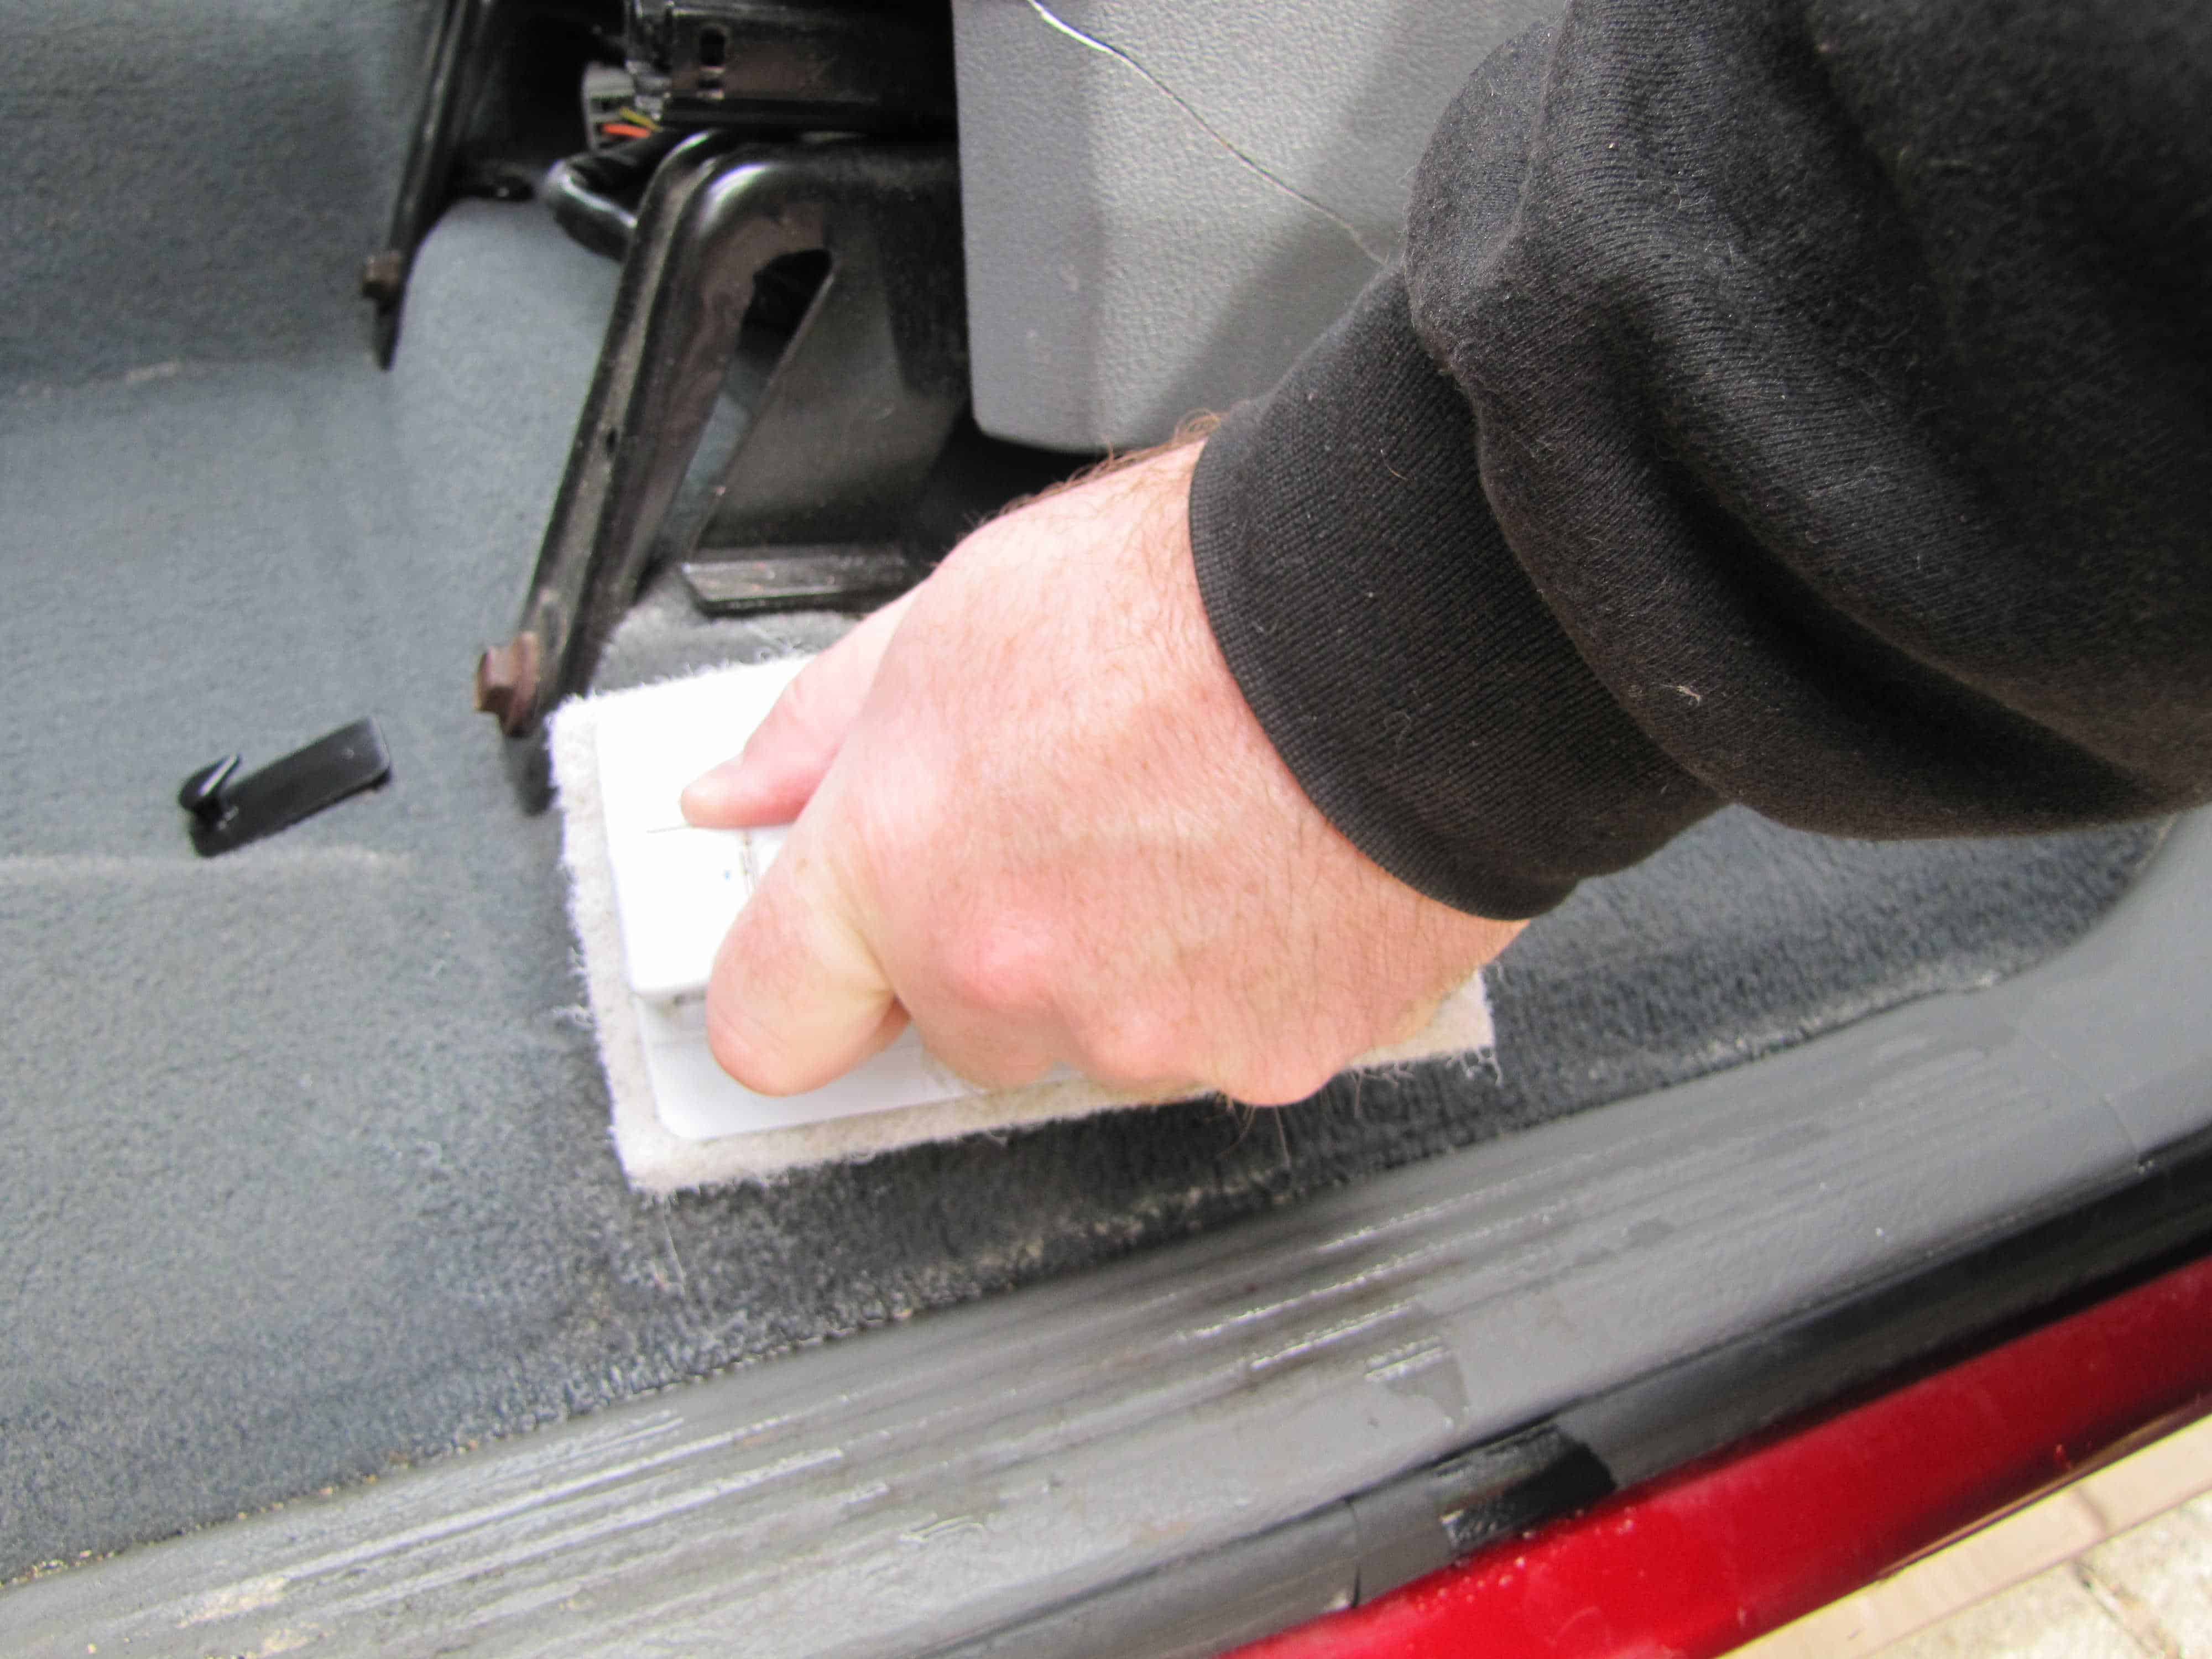 DIY Car Detailing - After Mixture Has Saturated Area Scrub Stains